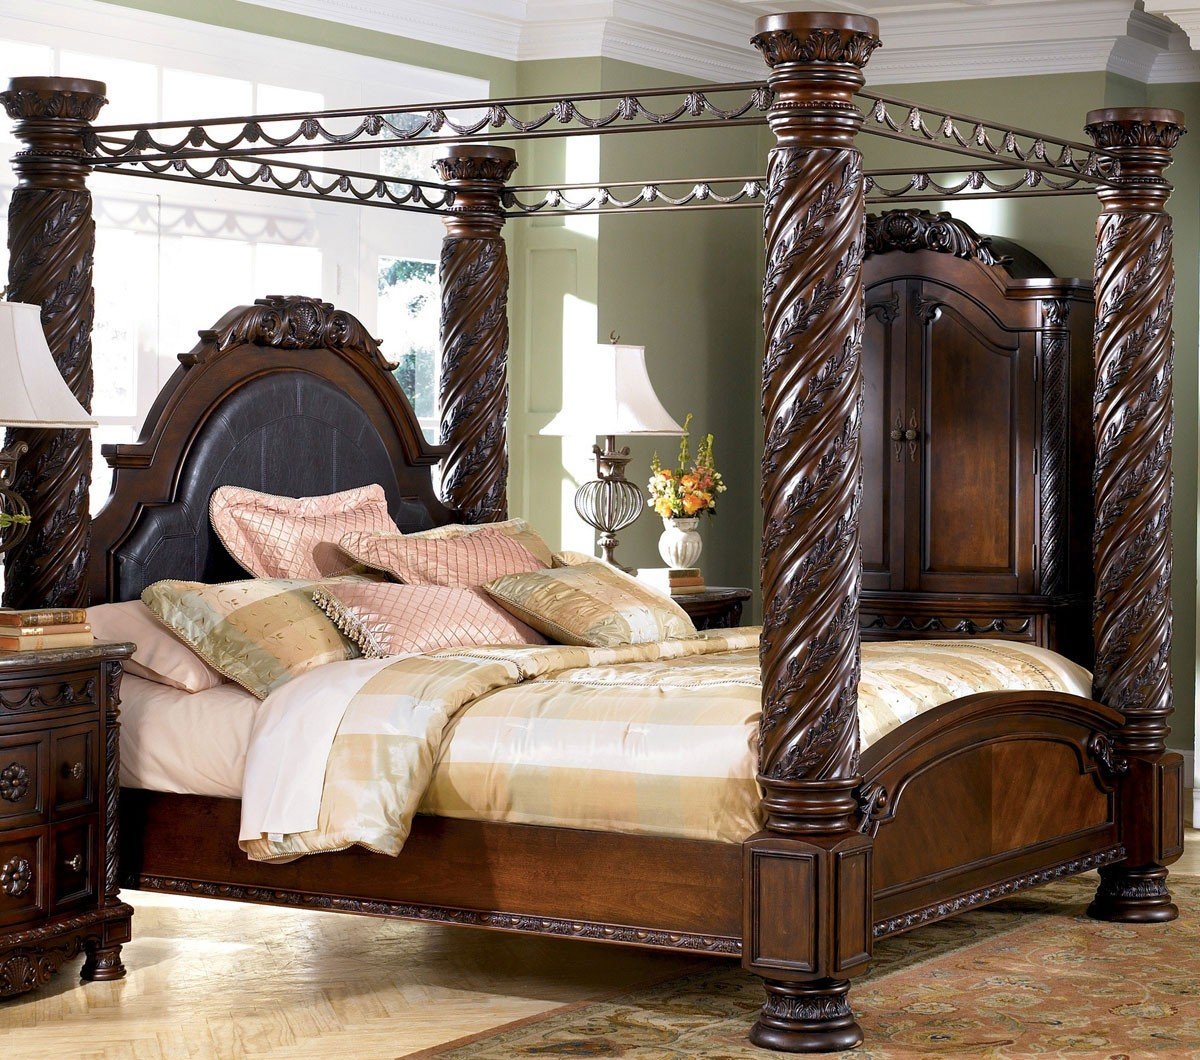 How To Use A Four Poster Bed Canopy To Good Effect: Black Canopy Bed, A Good Idea To Get Comfortable Bedroom